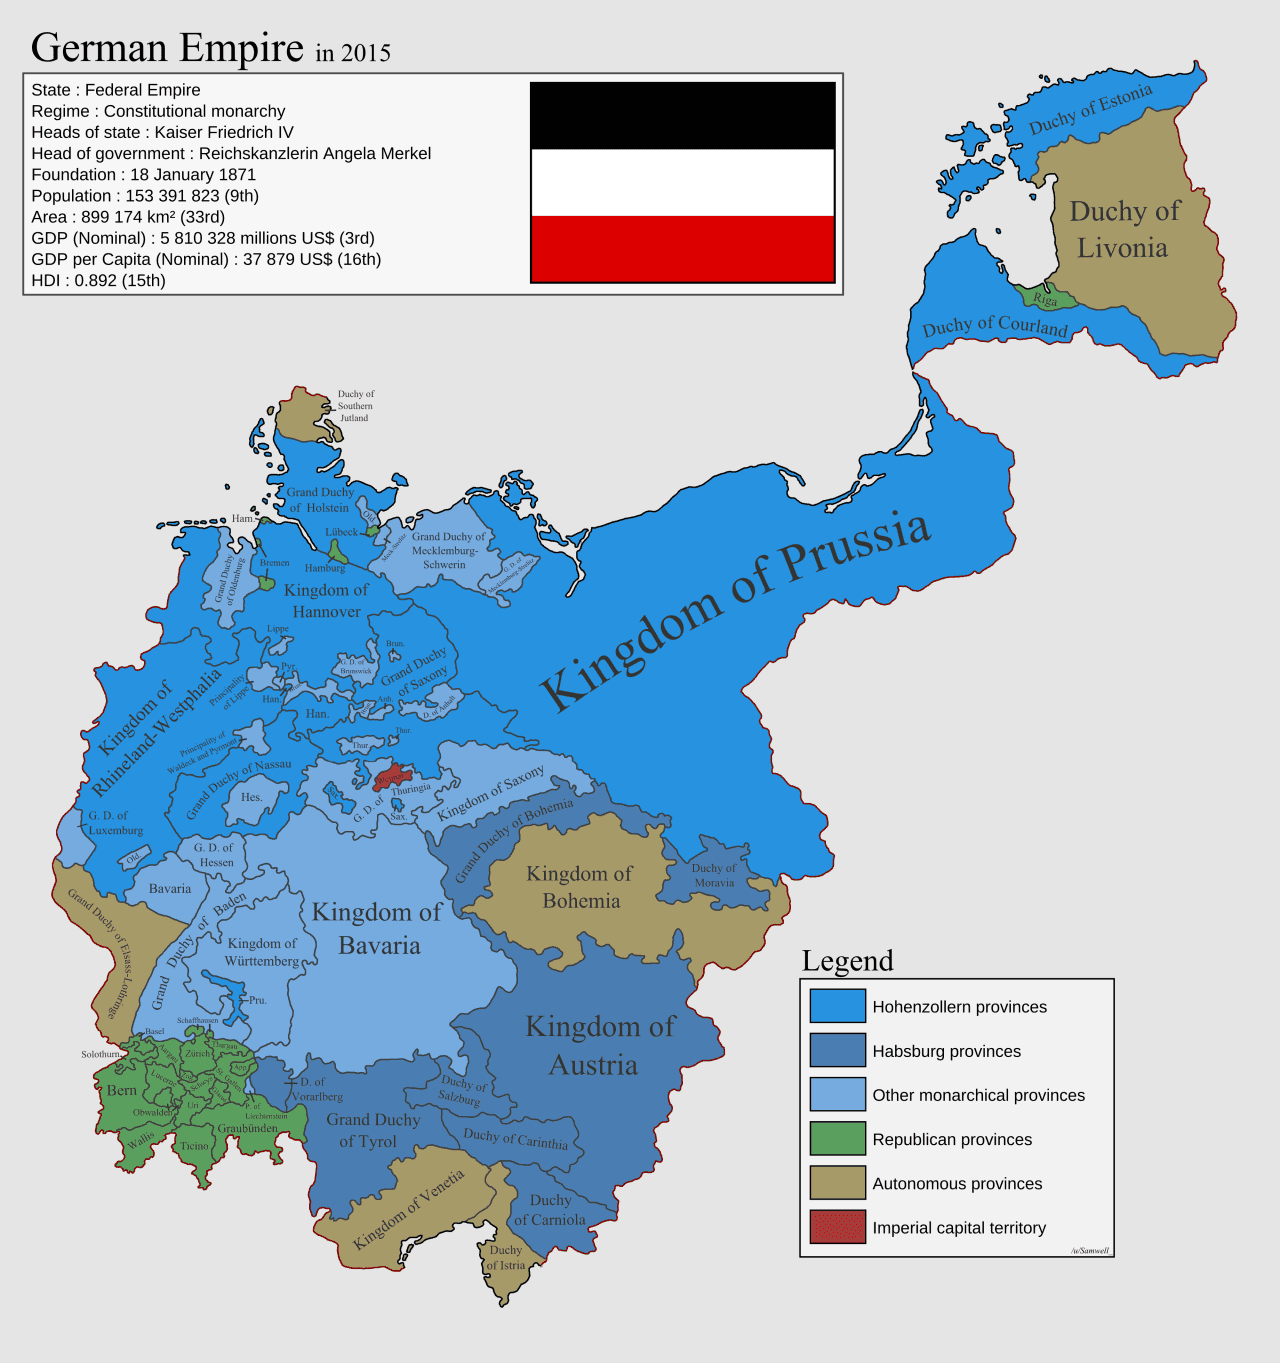 Maps On The Web A Counterfactual Map Of The German Empire In - Germany map 2015